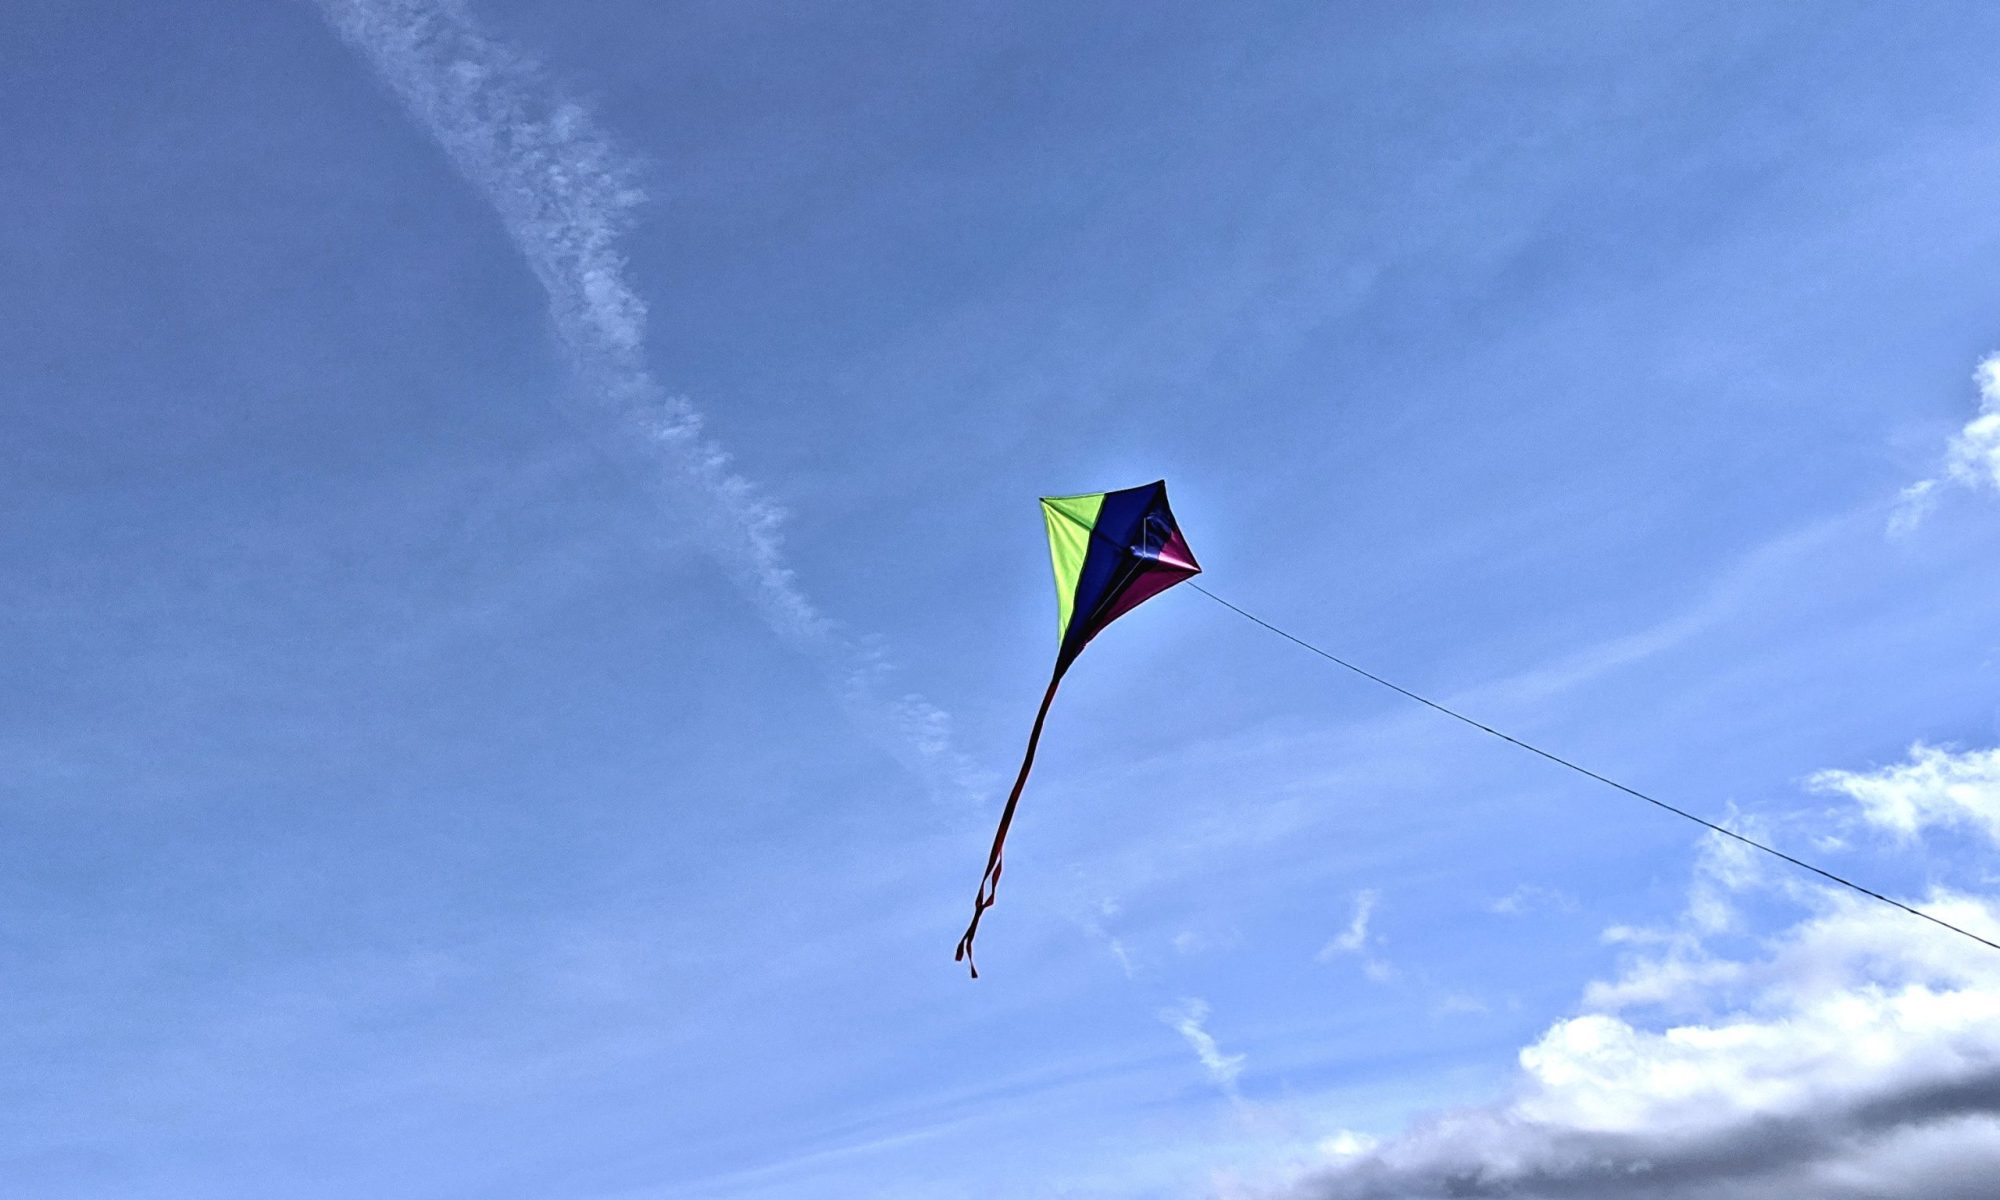 Finding my kite